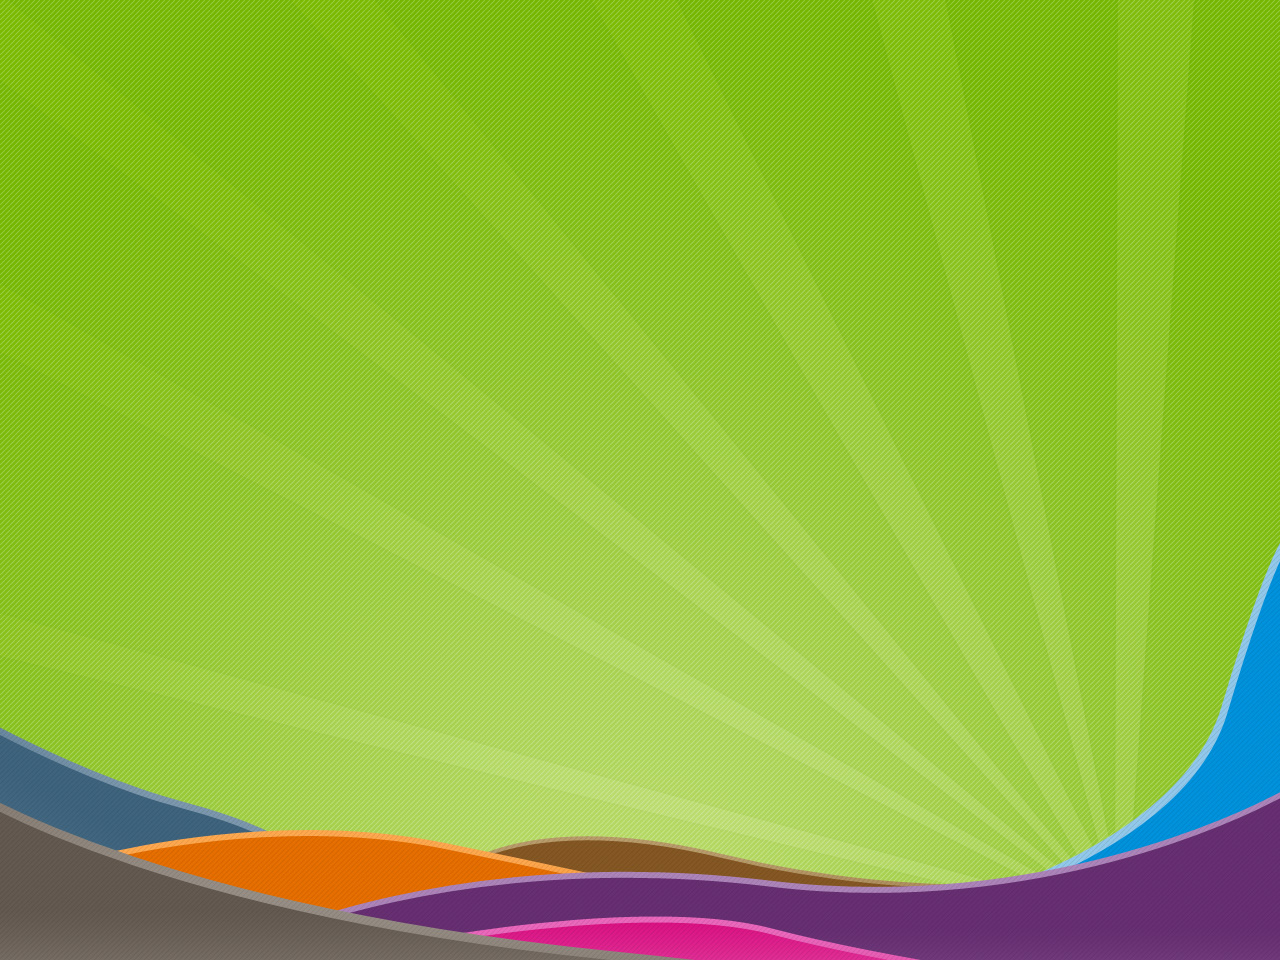 wallpapers pin fondos colores - photo #13